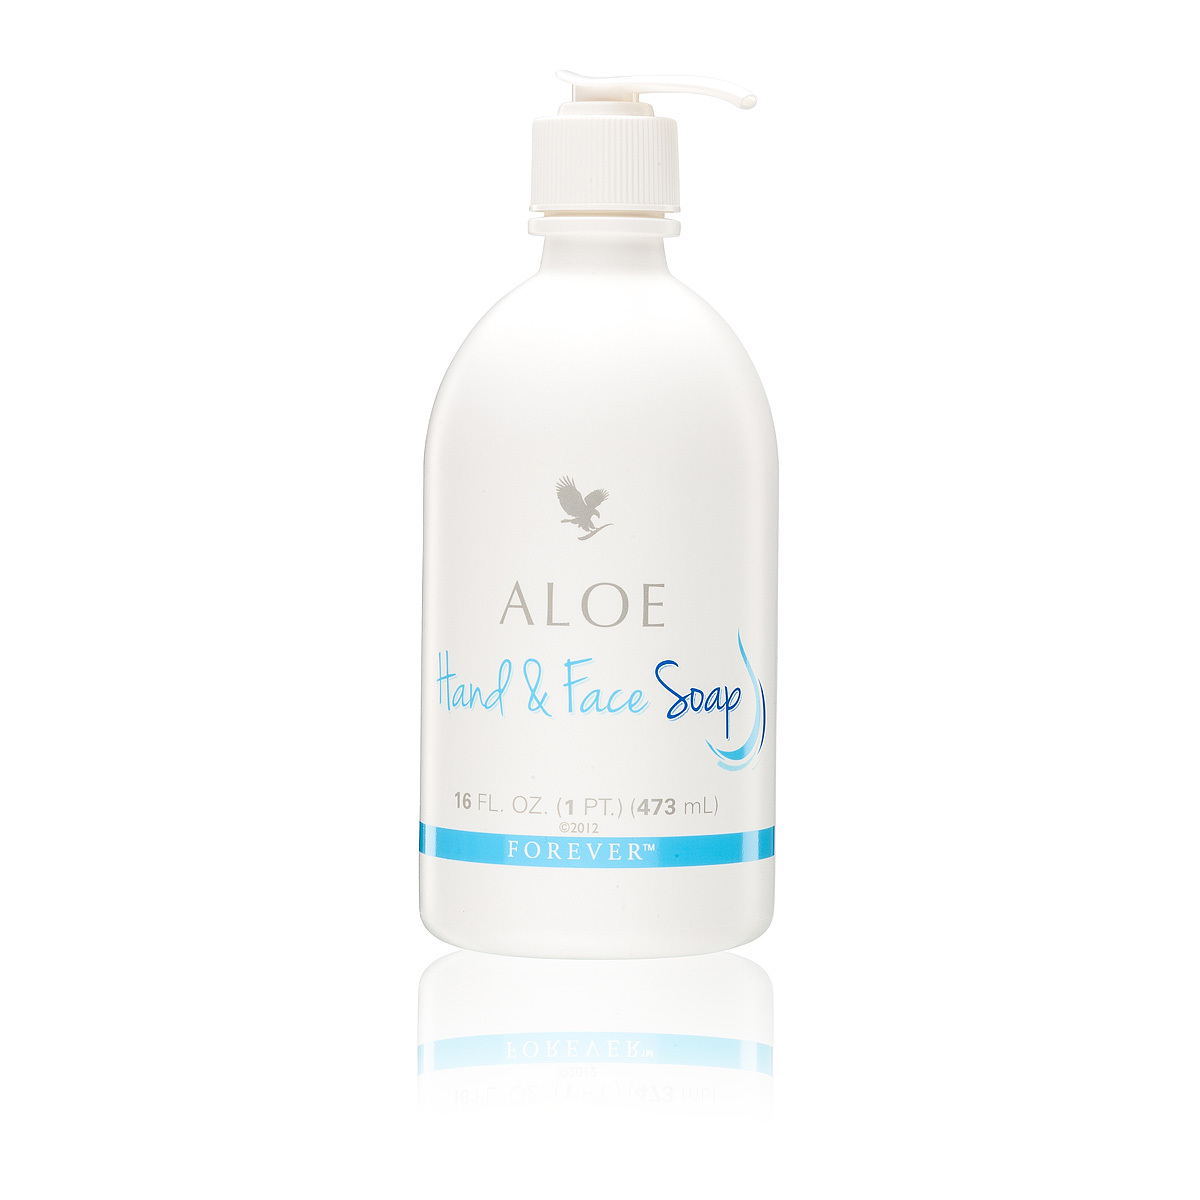 aloe-hand-face-soap.jpg